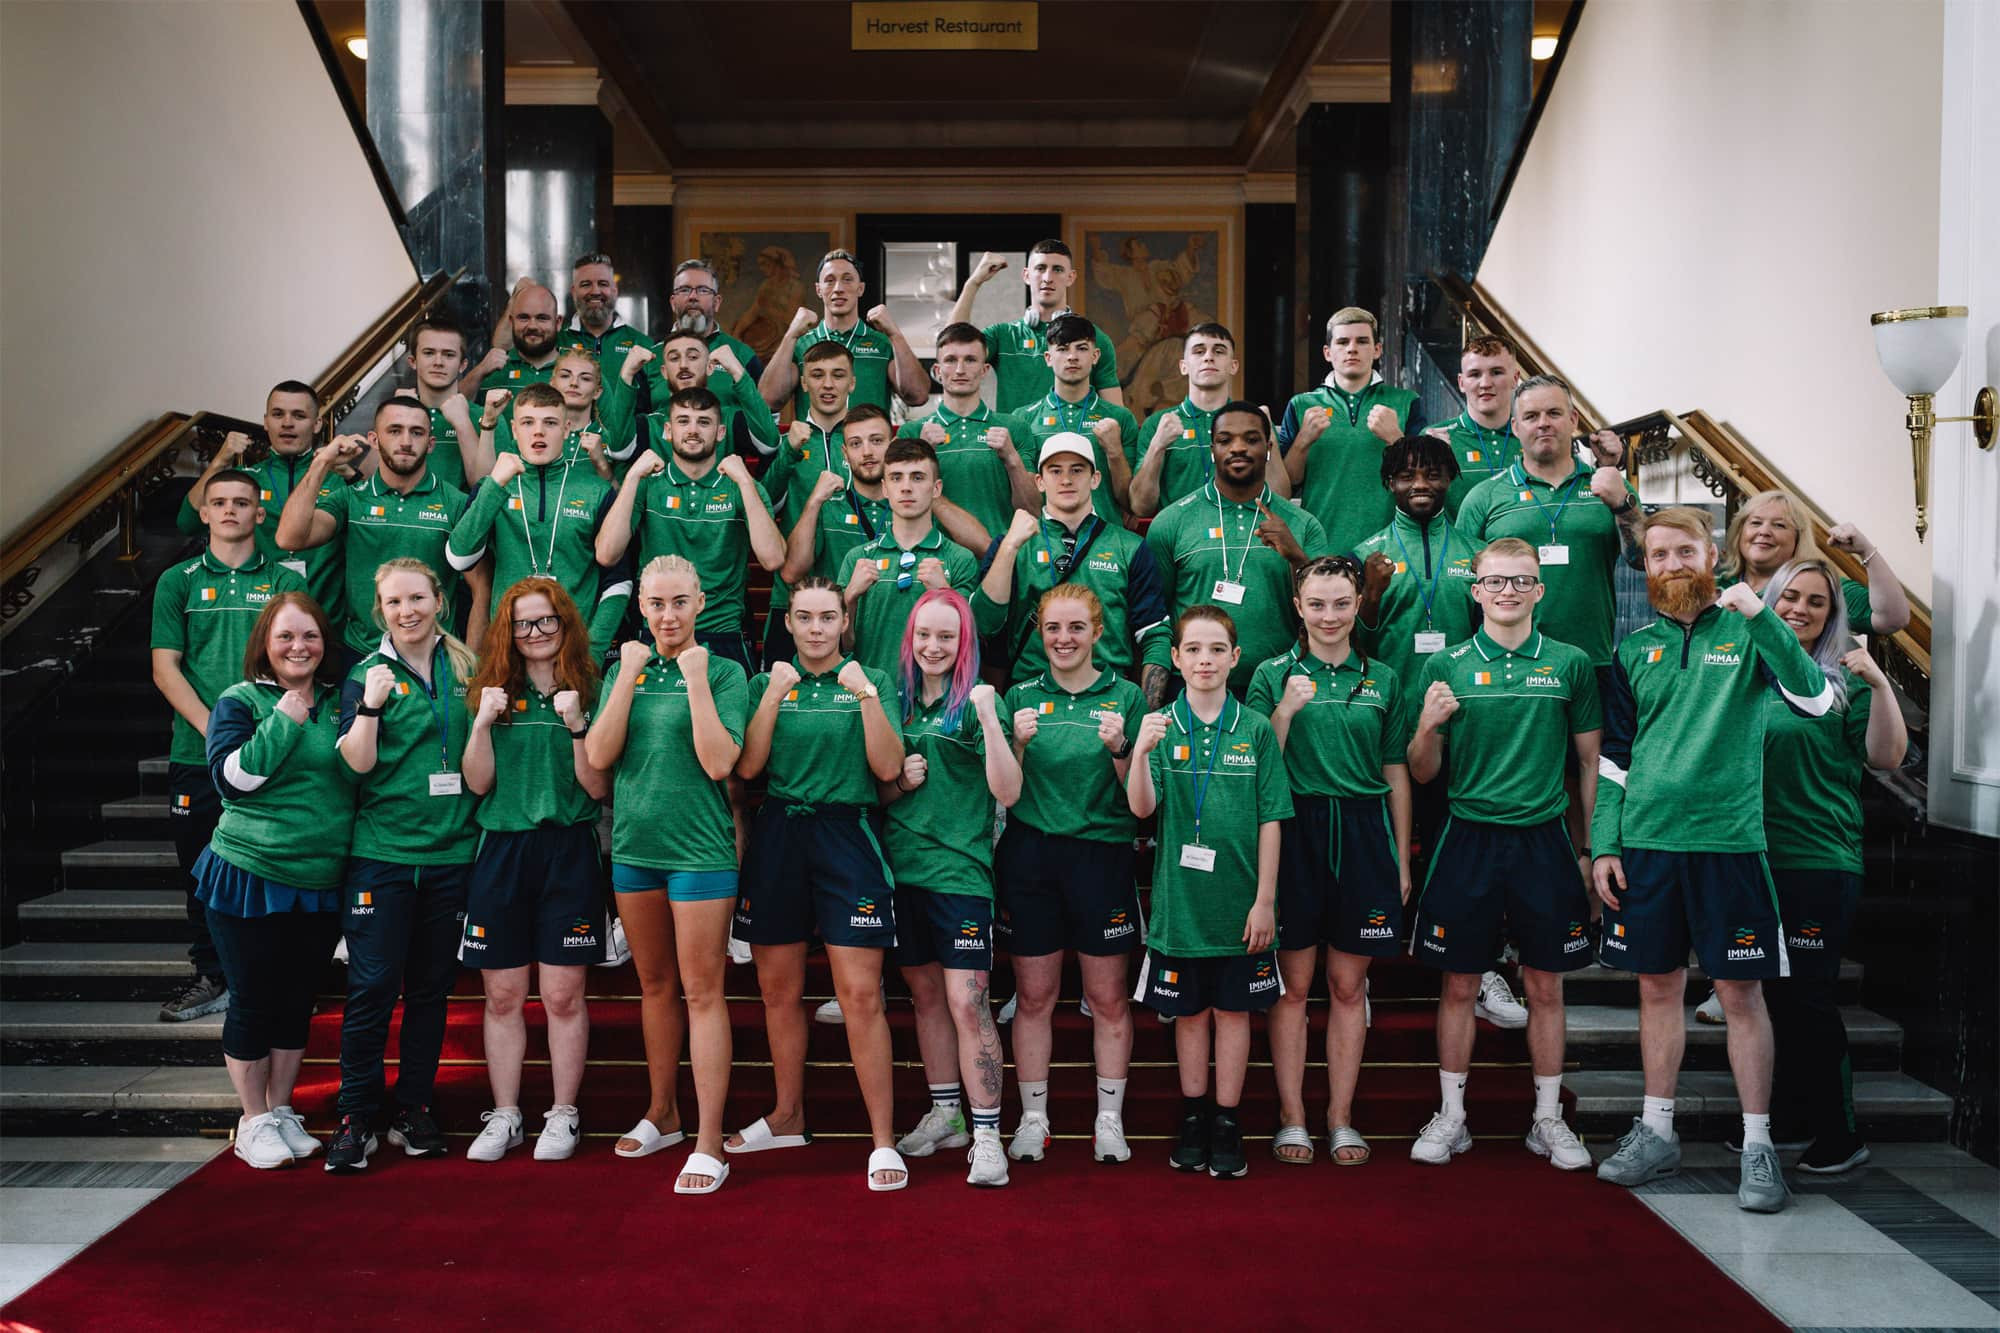 Irish medallists Bannon and Carney lauded on return from IMMAF World Cup